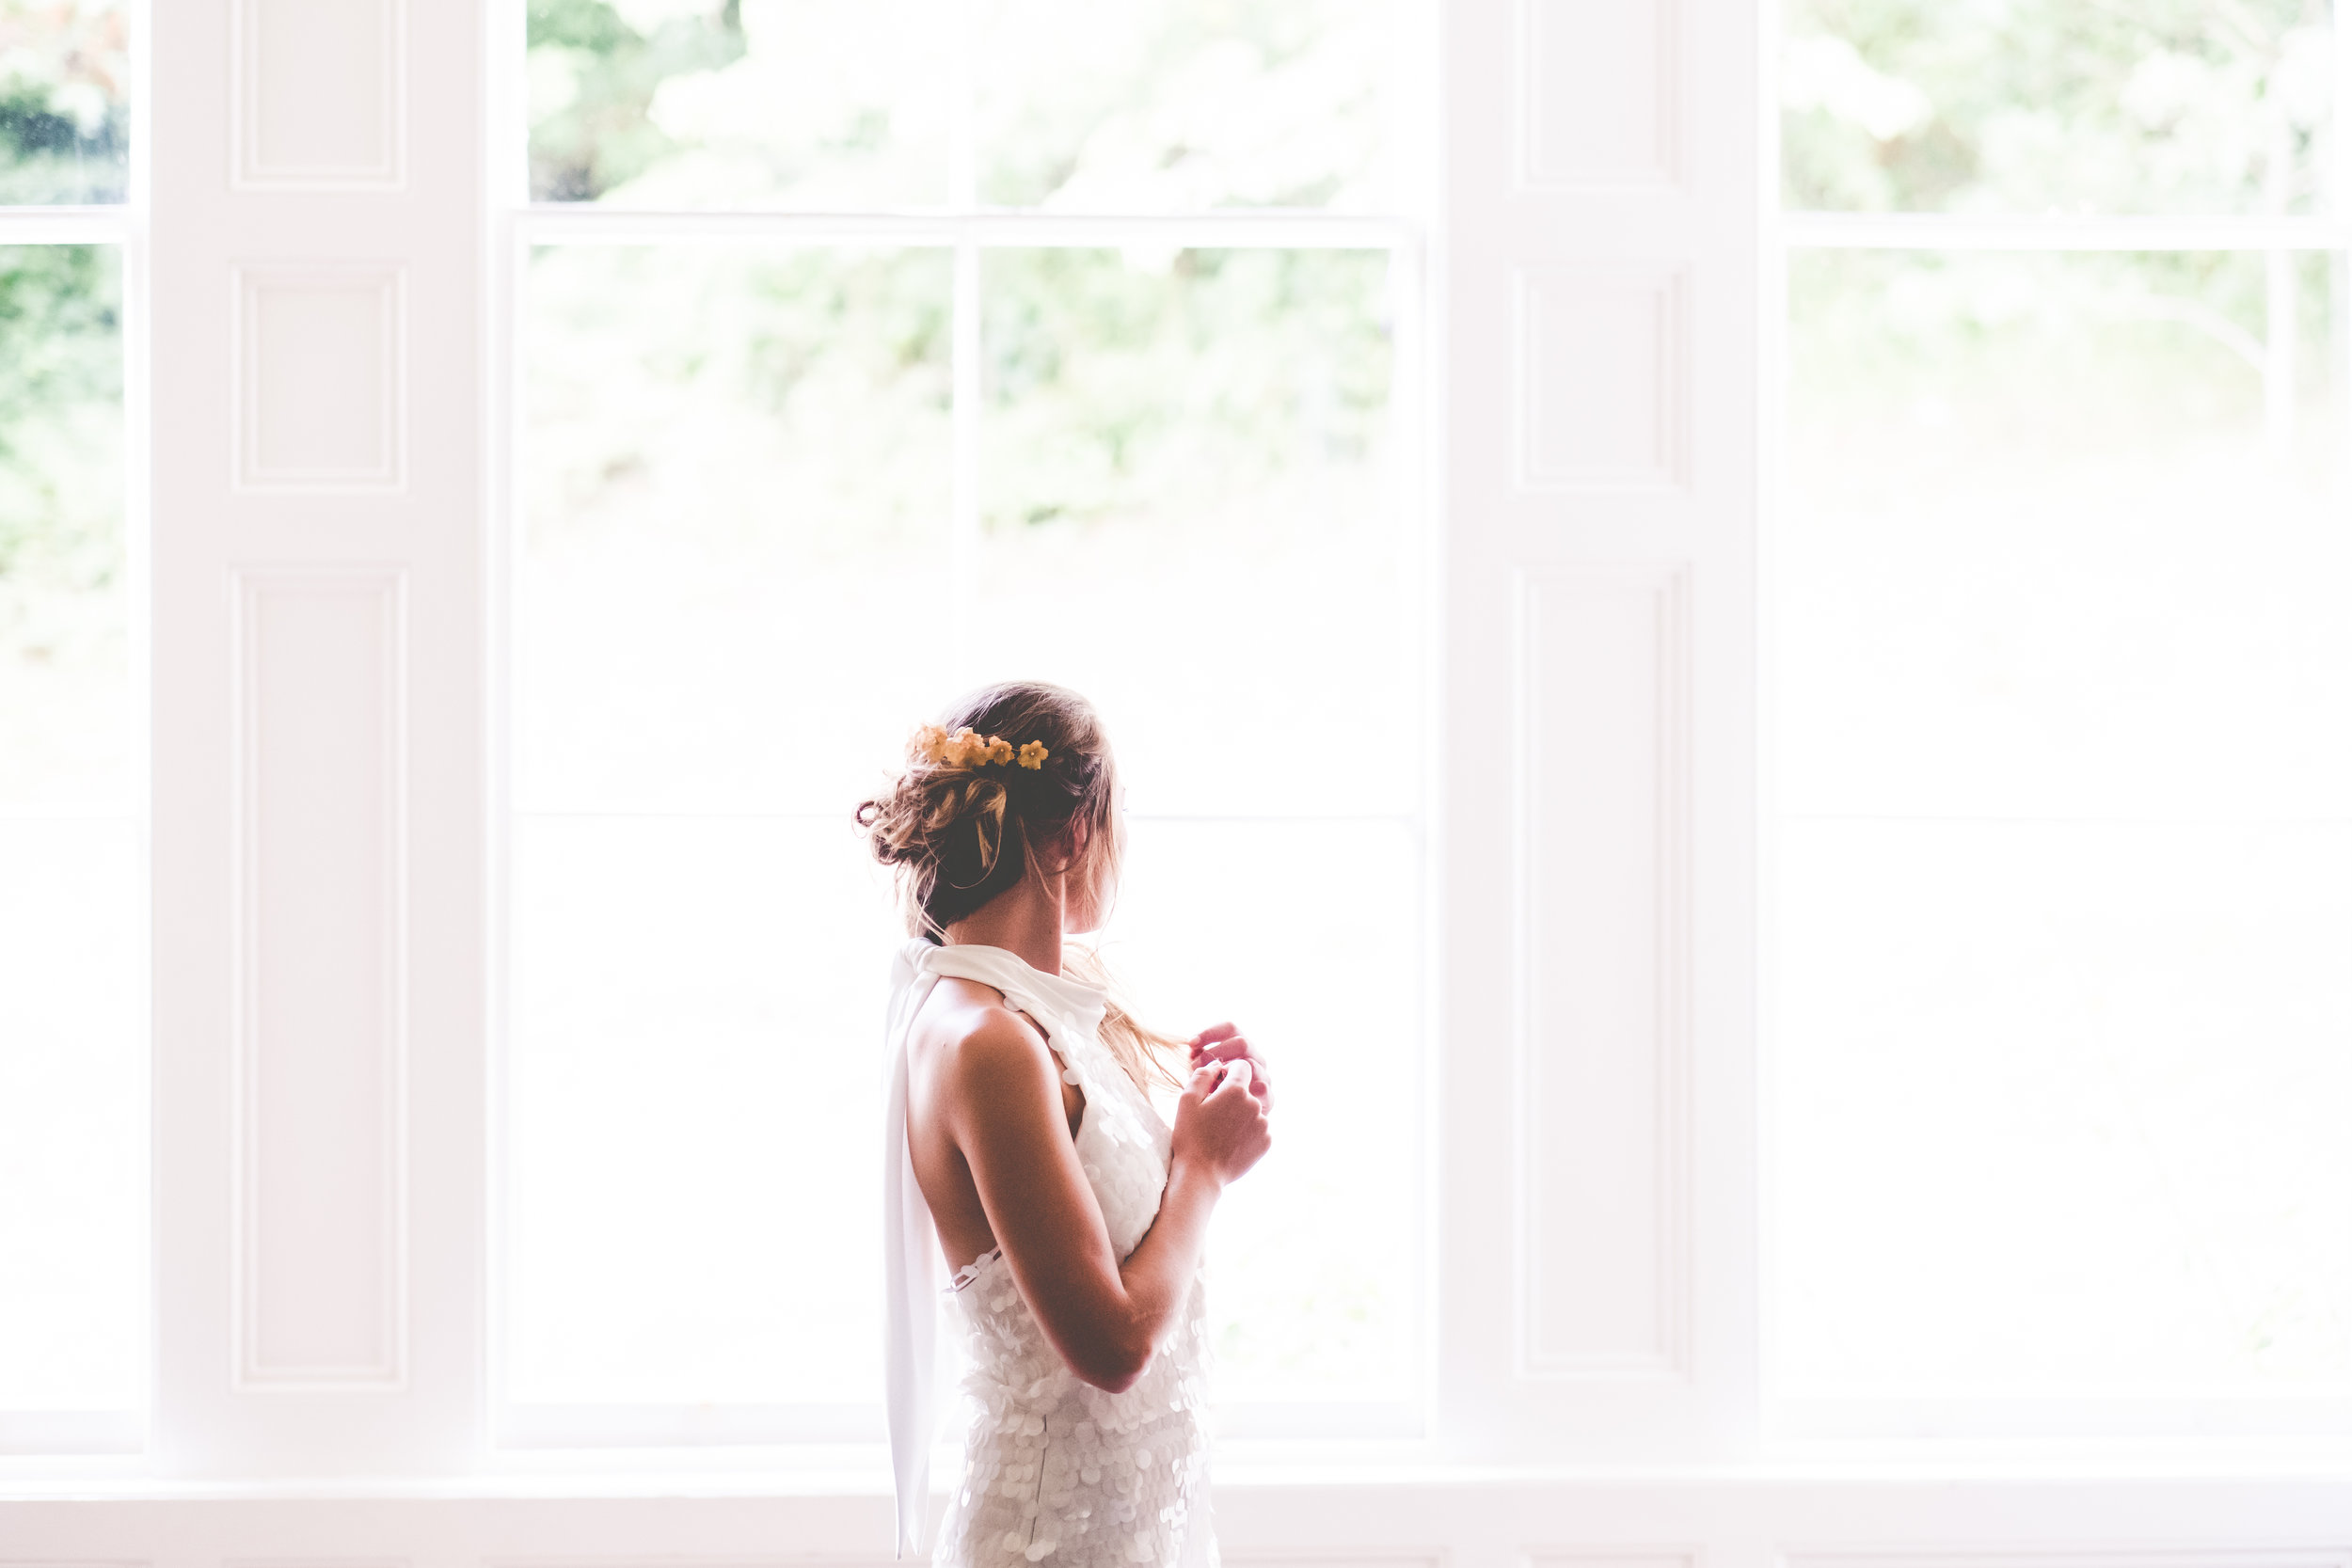 Nanteo's Styled Shoot - Images by Jon Turtle - Photographer-226.jpg